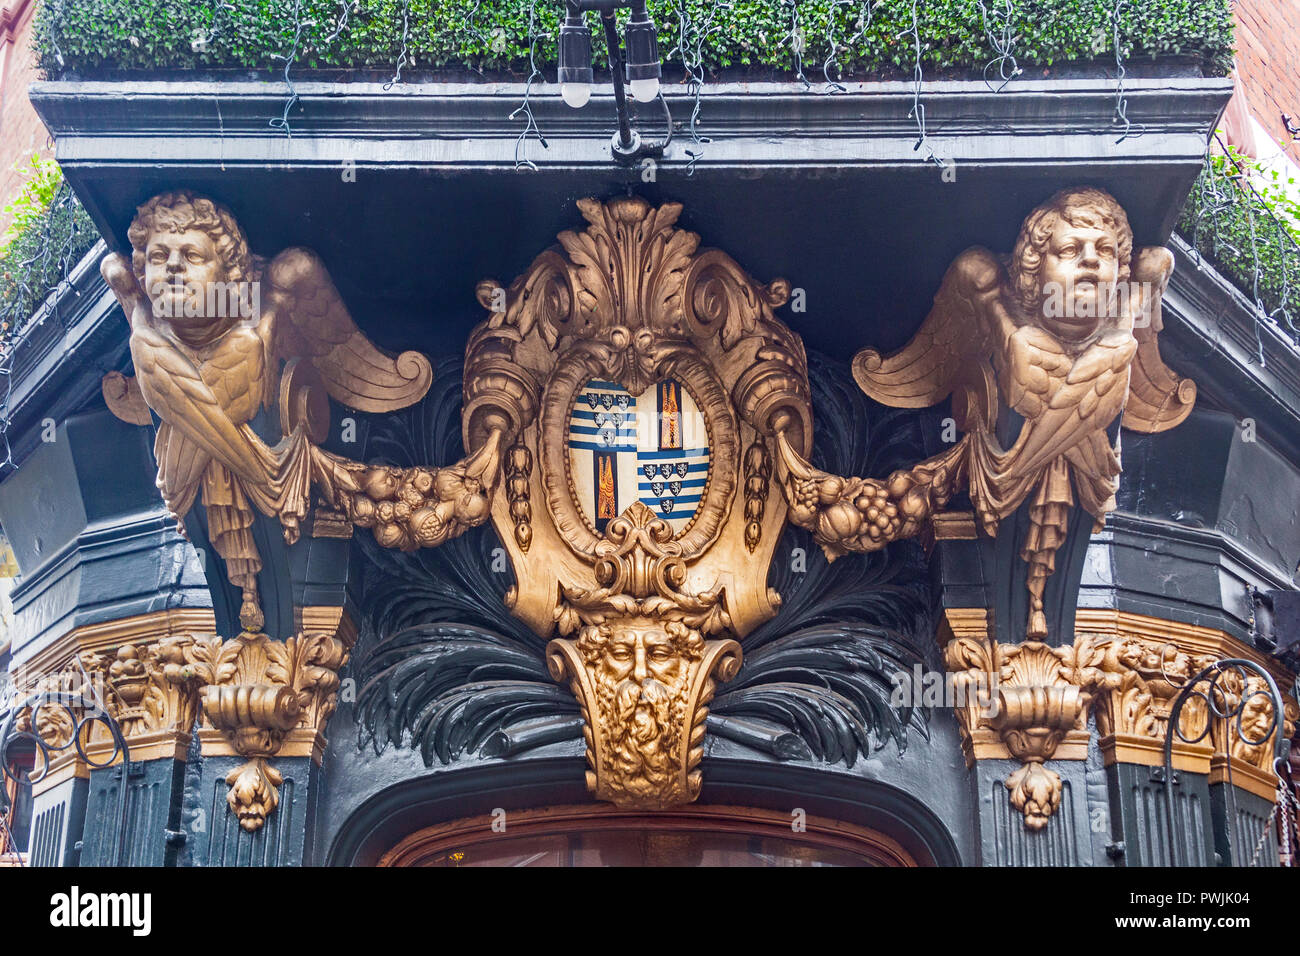 London, City of Westminster.   A pair of angelic figures supporting a canopy over the entrance to The Salisbury public house in St Martin's Lane. - Stock Image